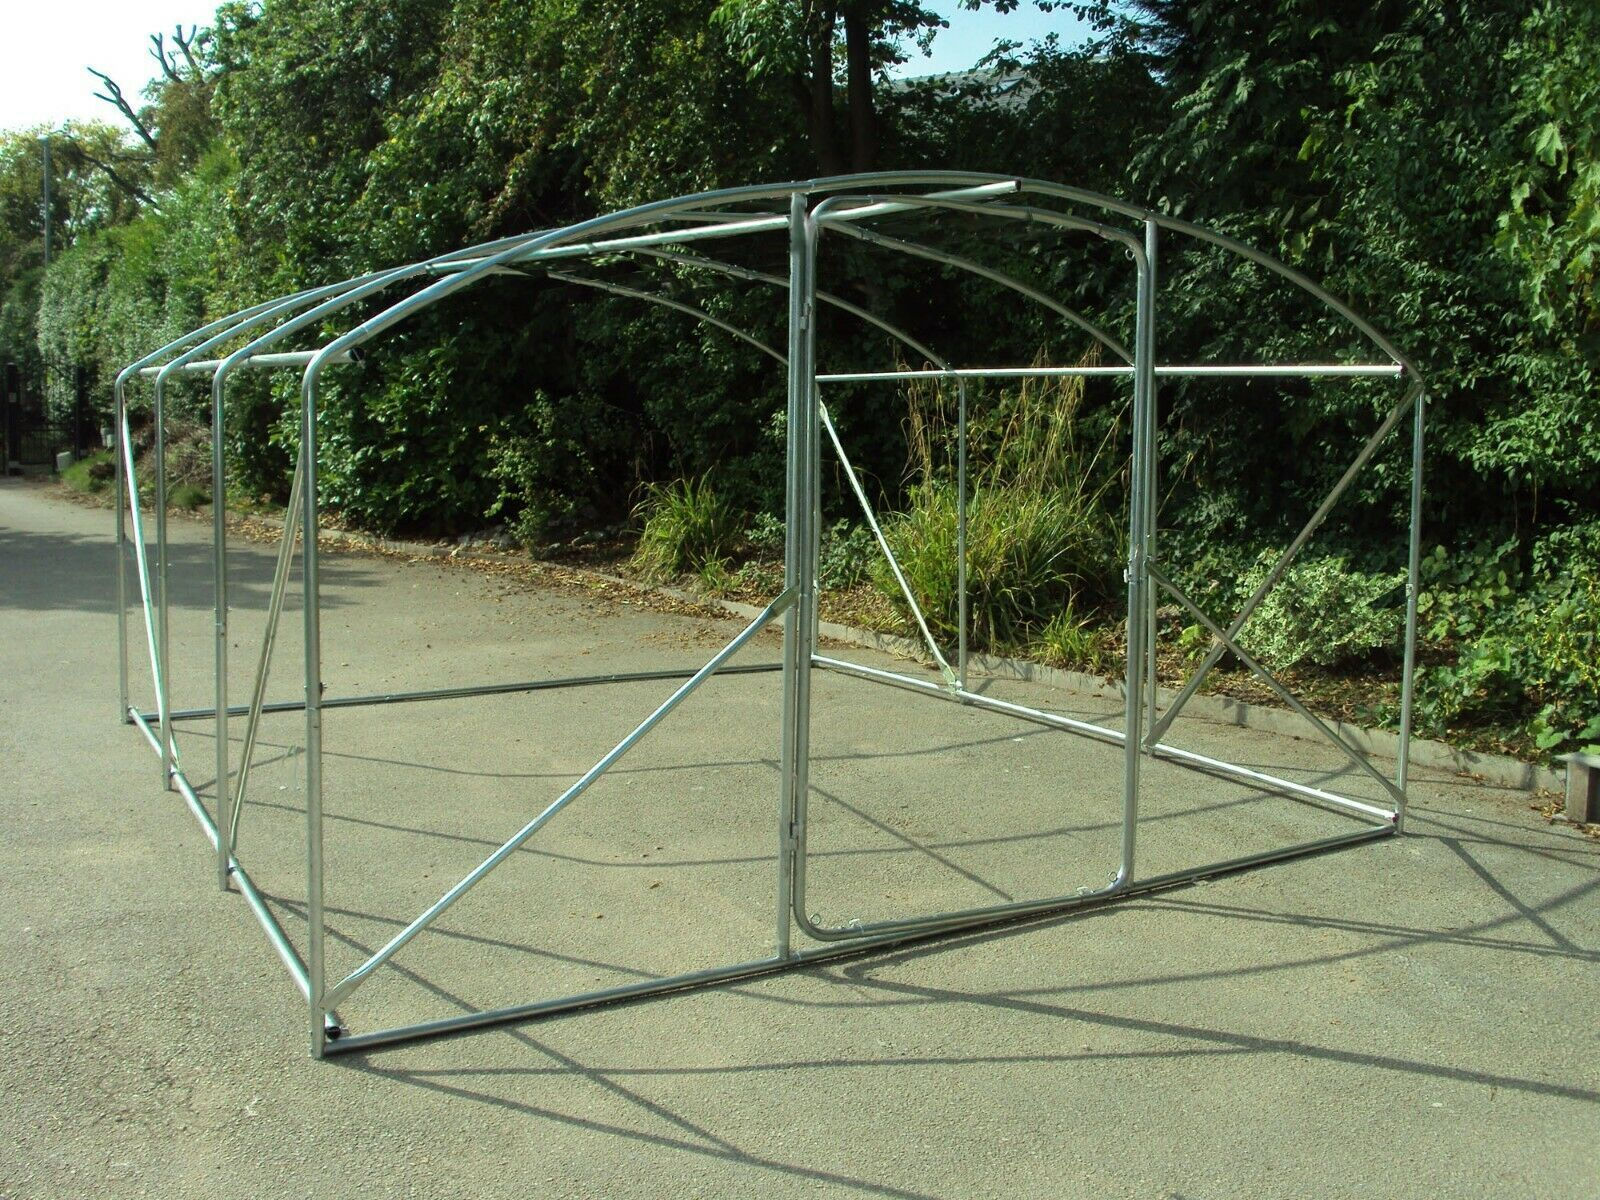 Frame Only 4x3 5m Polytunnel Plastic Tunnels Greenhouse Greenhouse Plant Tunnel In 2020 Plants Greenhouse Greenhouse Plants